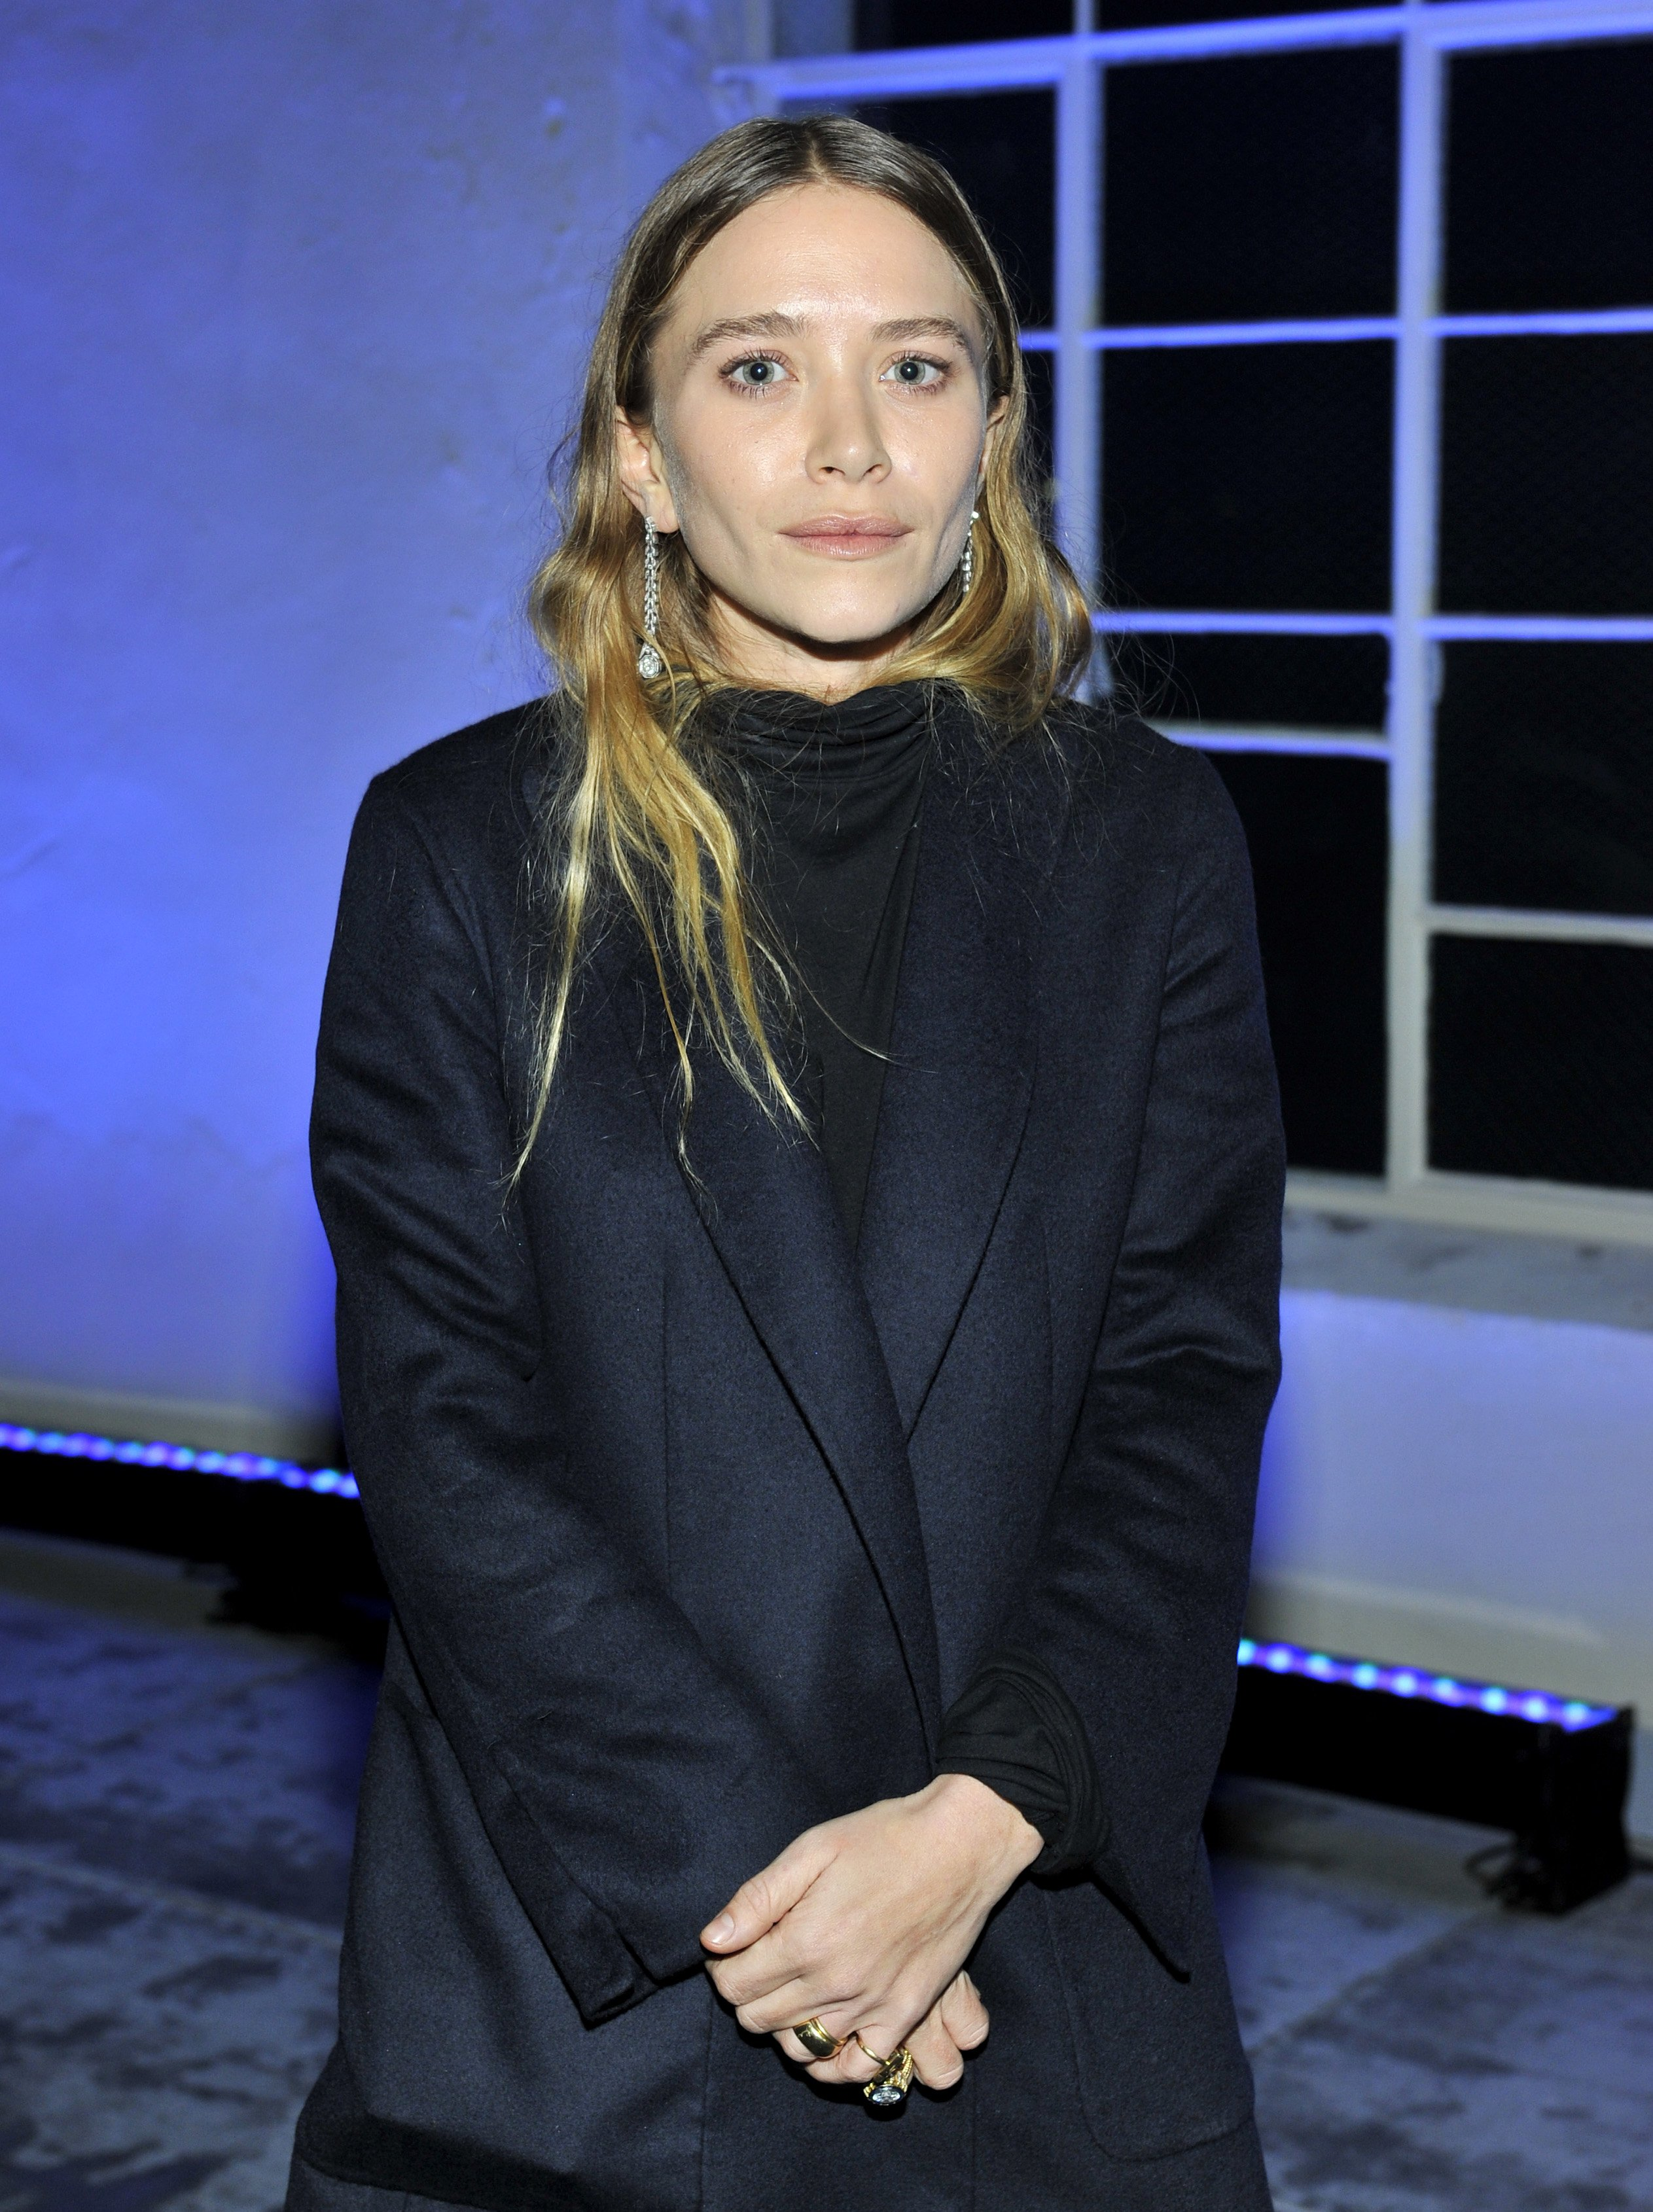 Mary-Kate Olsen attends the launch of Just One Eye's Ulysses Tier 1: The Ultimate Disaster Relief Kit on December 5, 2014 in Los Angeles, California | Photo: Getty Images